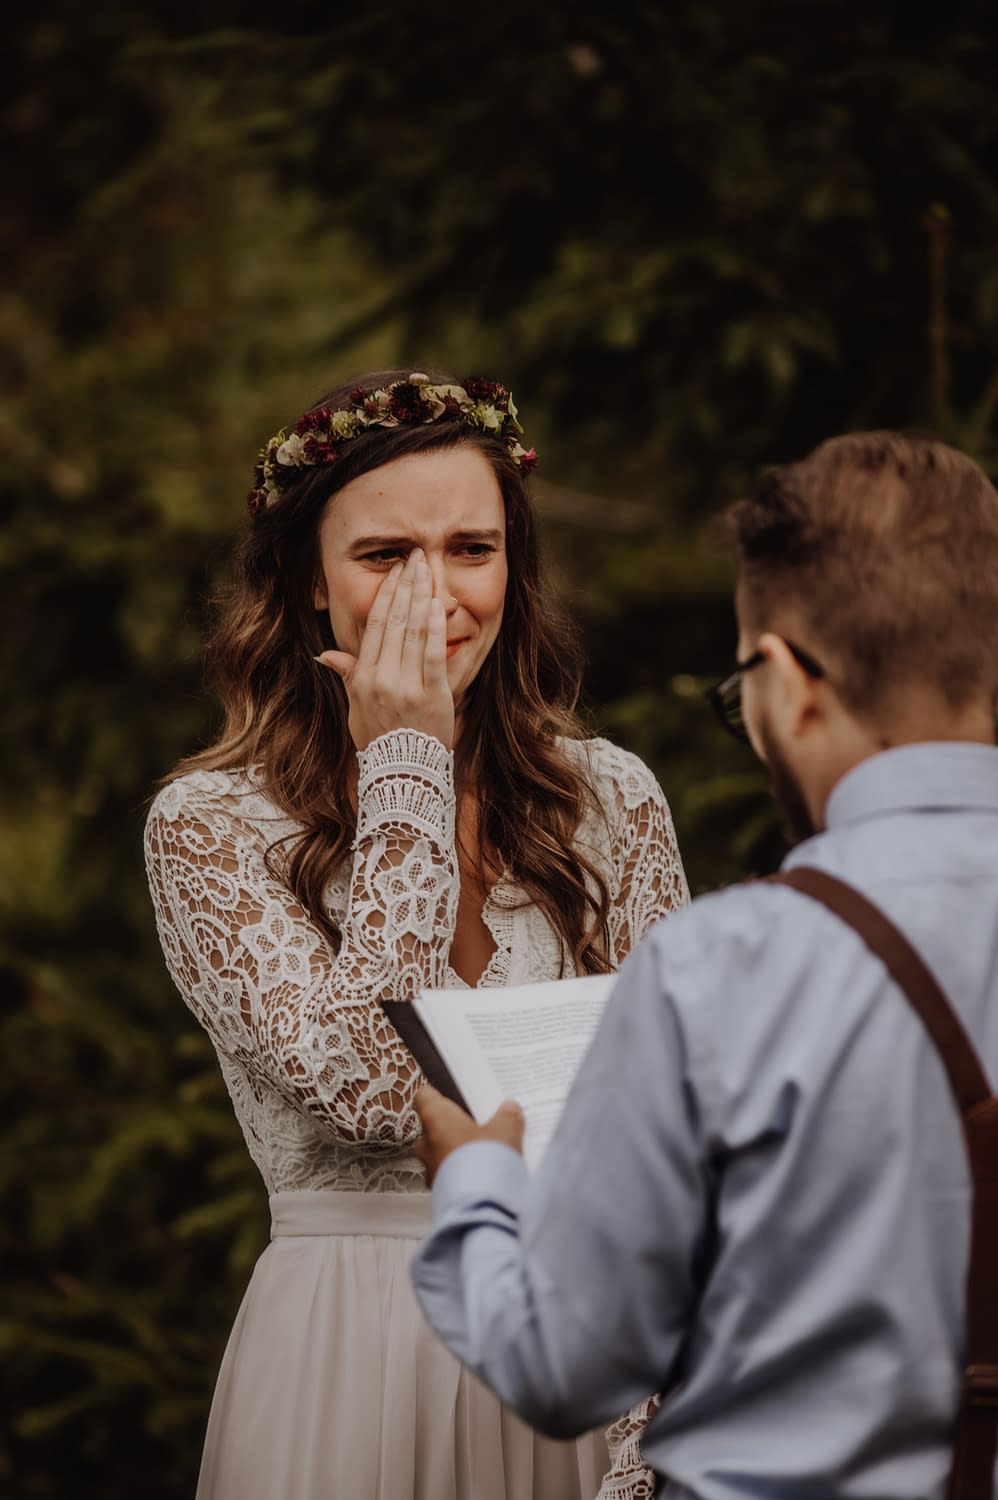 Memories captured in Elopement Package in upstate NY by photographers The Pinckards